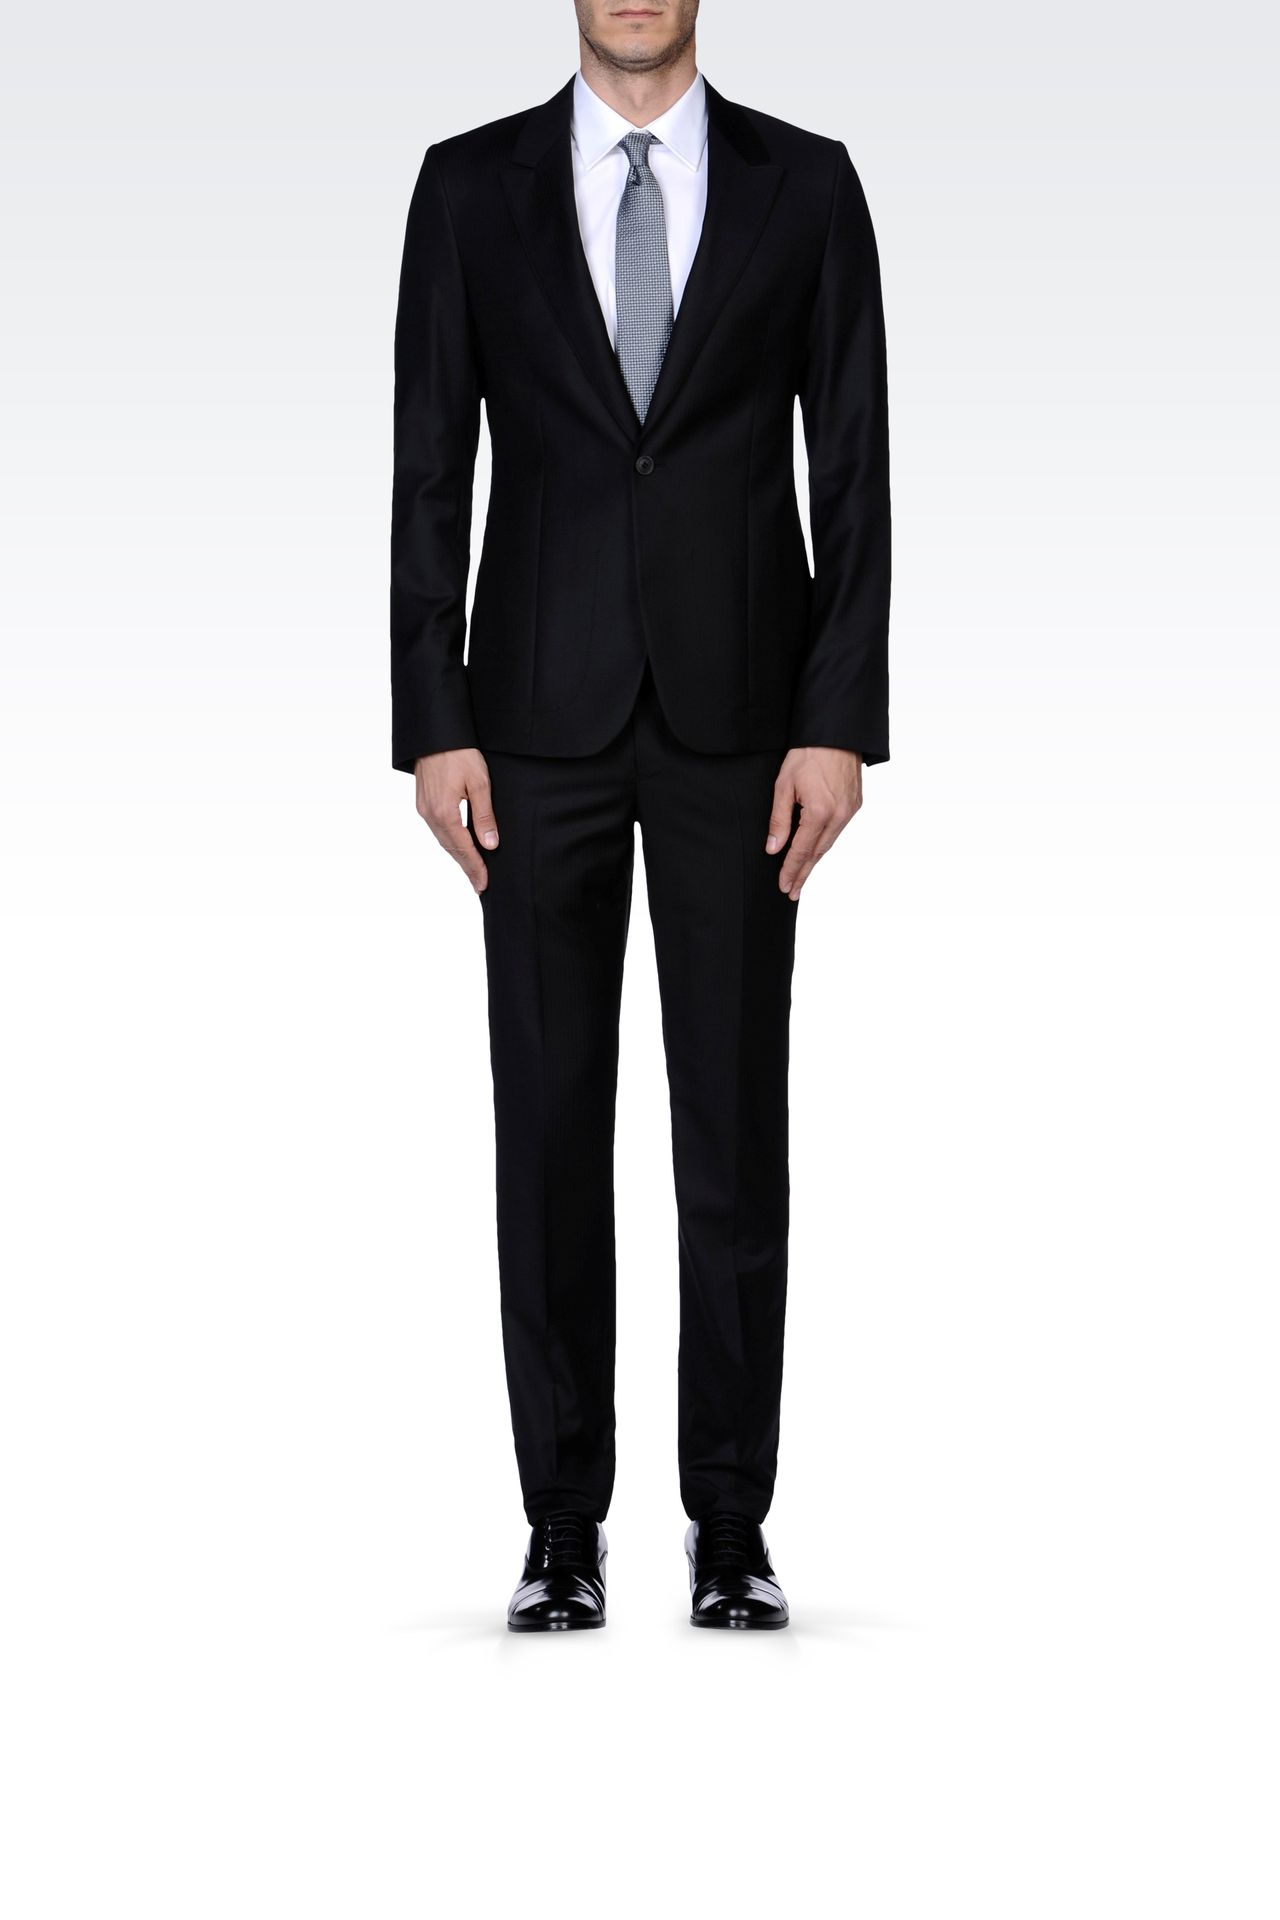 PINSTRIPE SUIT IN VIRGIN WOOL : One button suits Men by Armani - 0